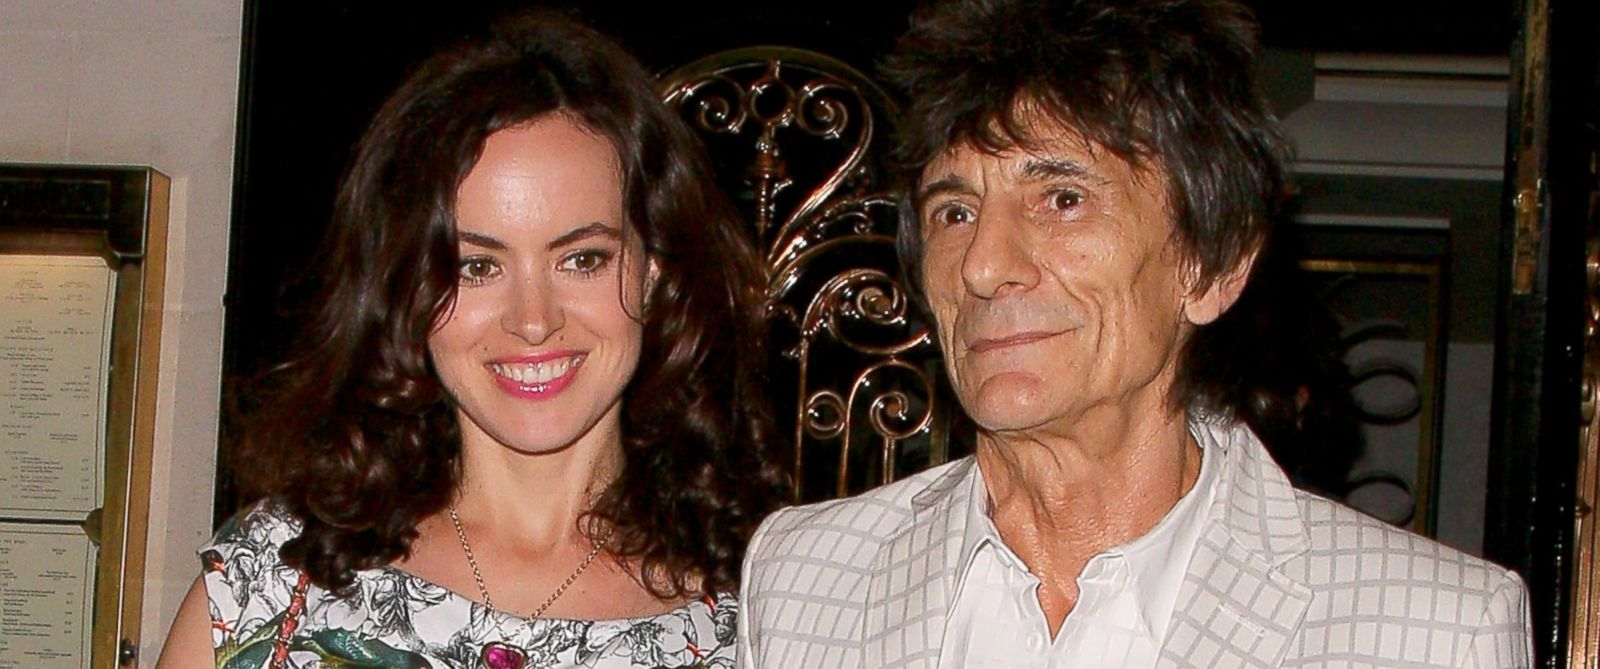 PHOTO: Ronnie Wood and Sally Humphreys at Scotts restaurant, July 16, 2014, in London.